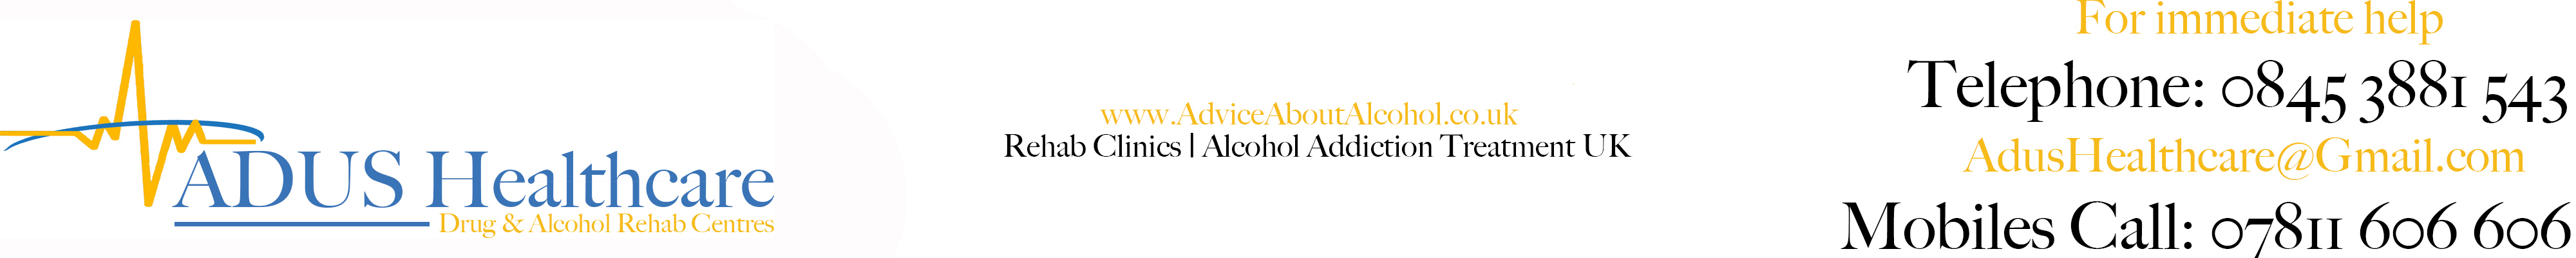 ADVICE ABOUT ALCOHOL ADDICTION